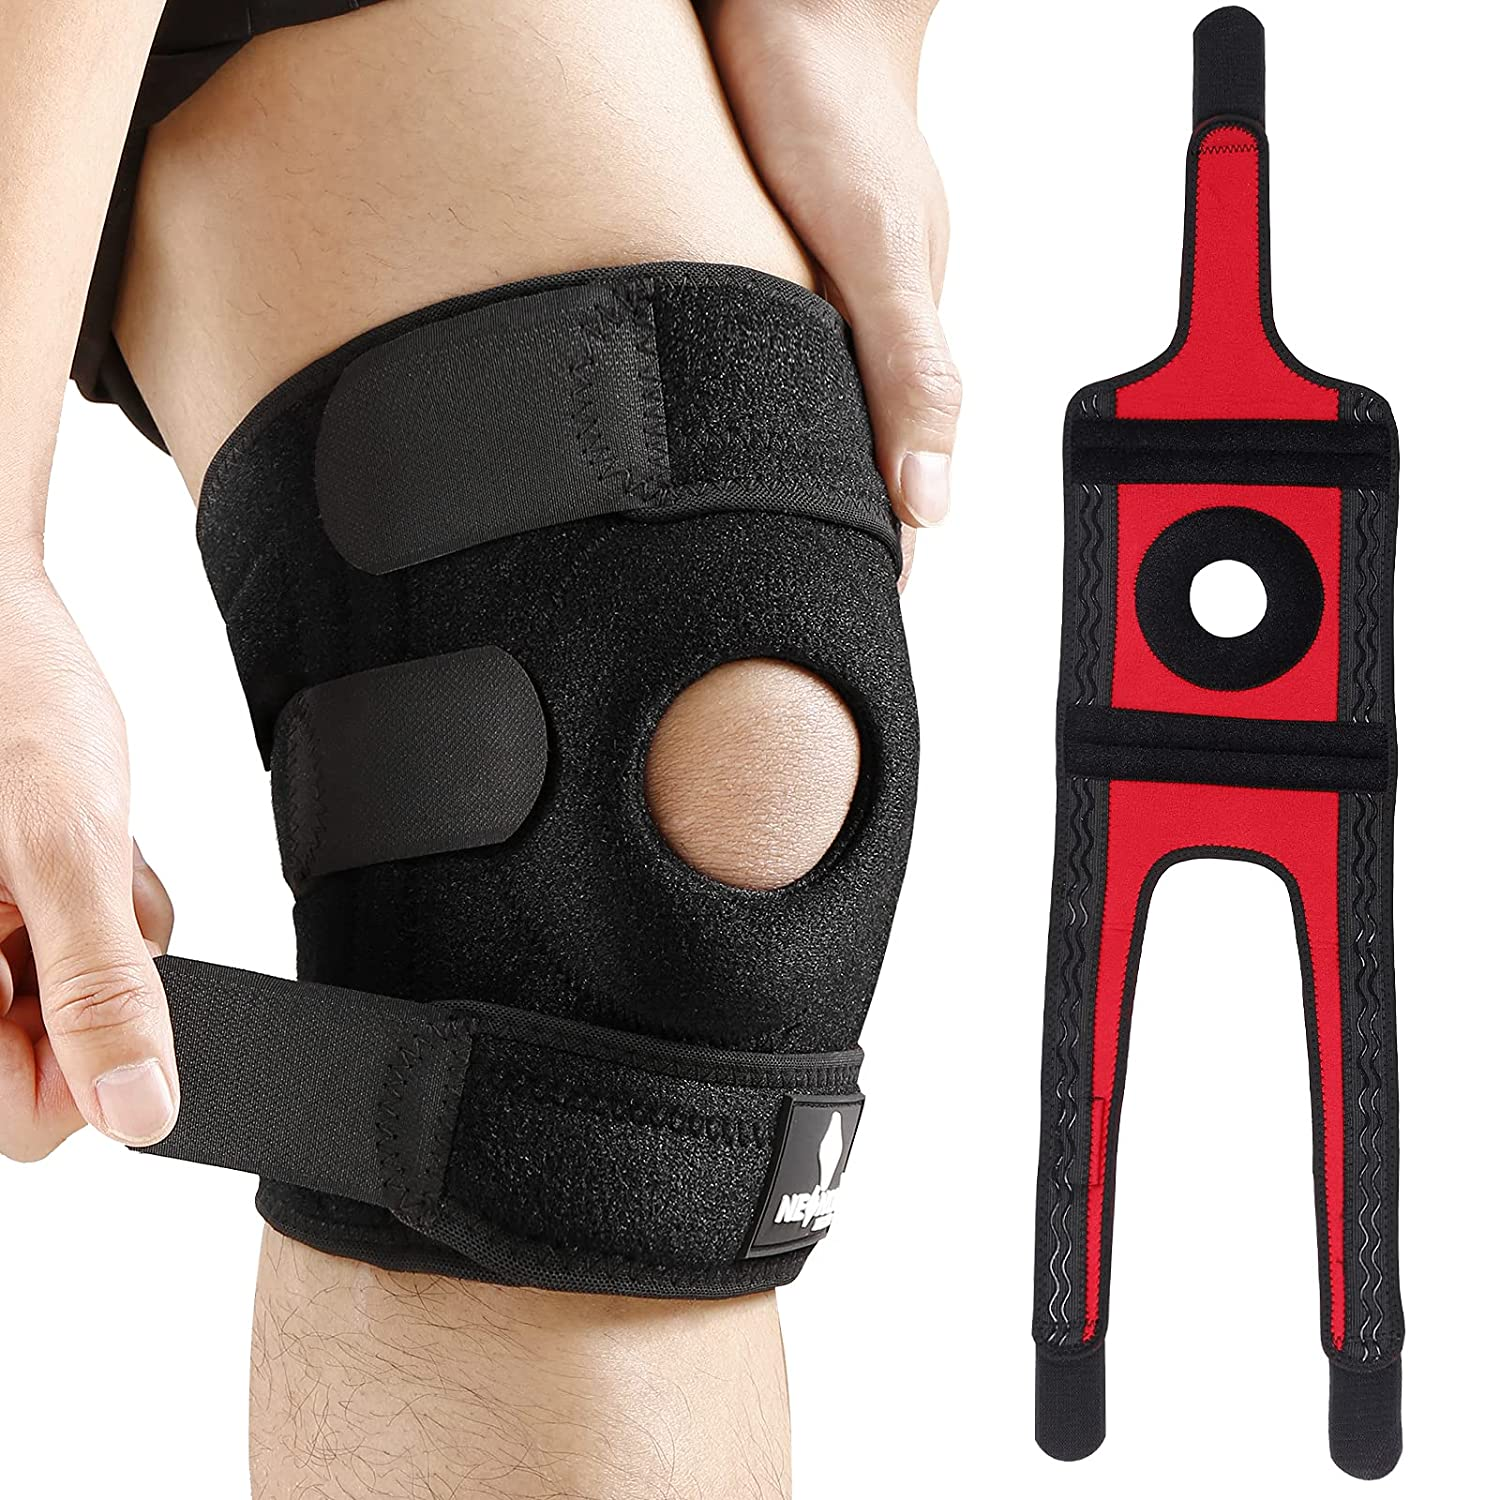 NEENCA Knee Brace with Side Stabilizers & Patella Gel Pads, Adjustable Velcro Straps Knee Support Wrap for Knee Pain,Running,Meniscus Tear,ACL,Joint Pain Relief, Injury Recovery,Sports-4 Sizes. ACE-55: Industrial & Scientific